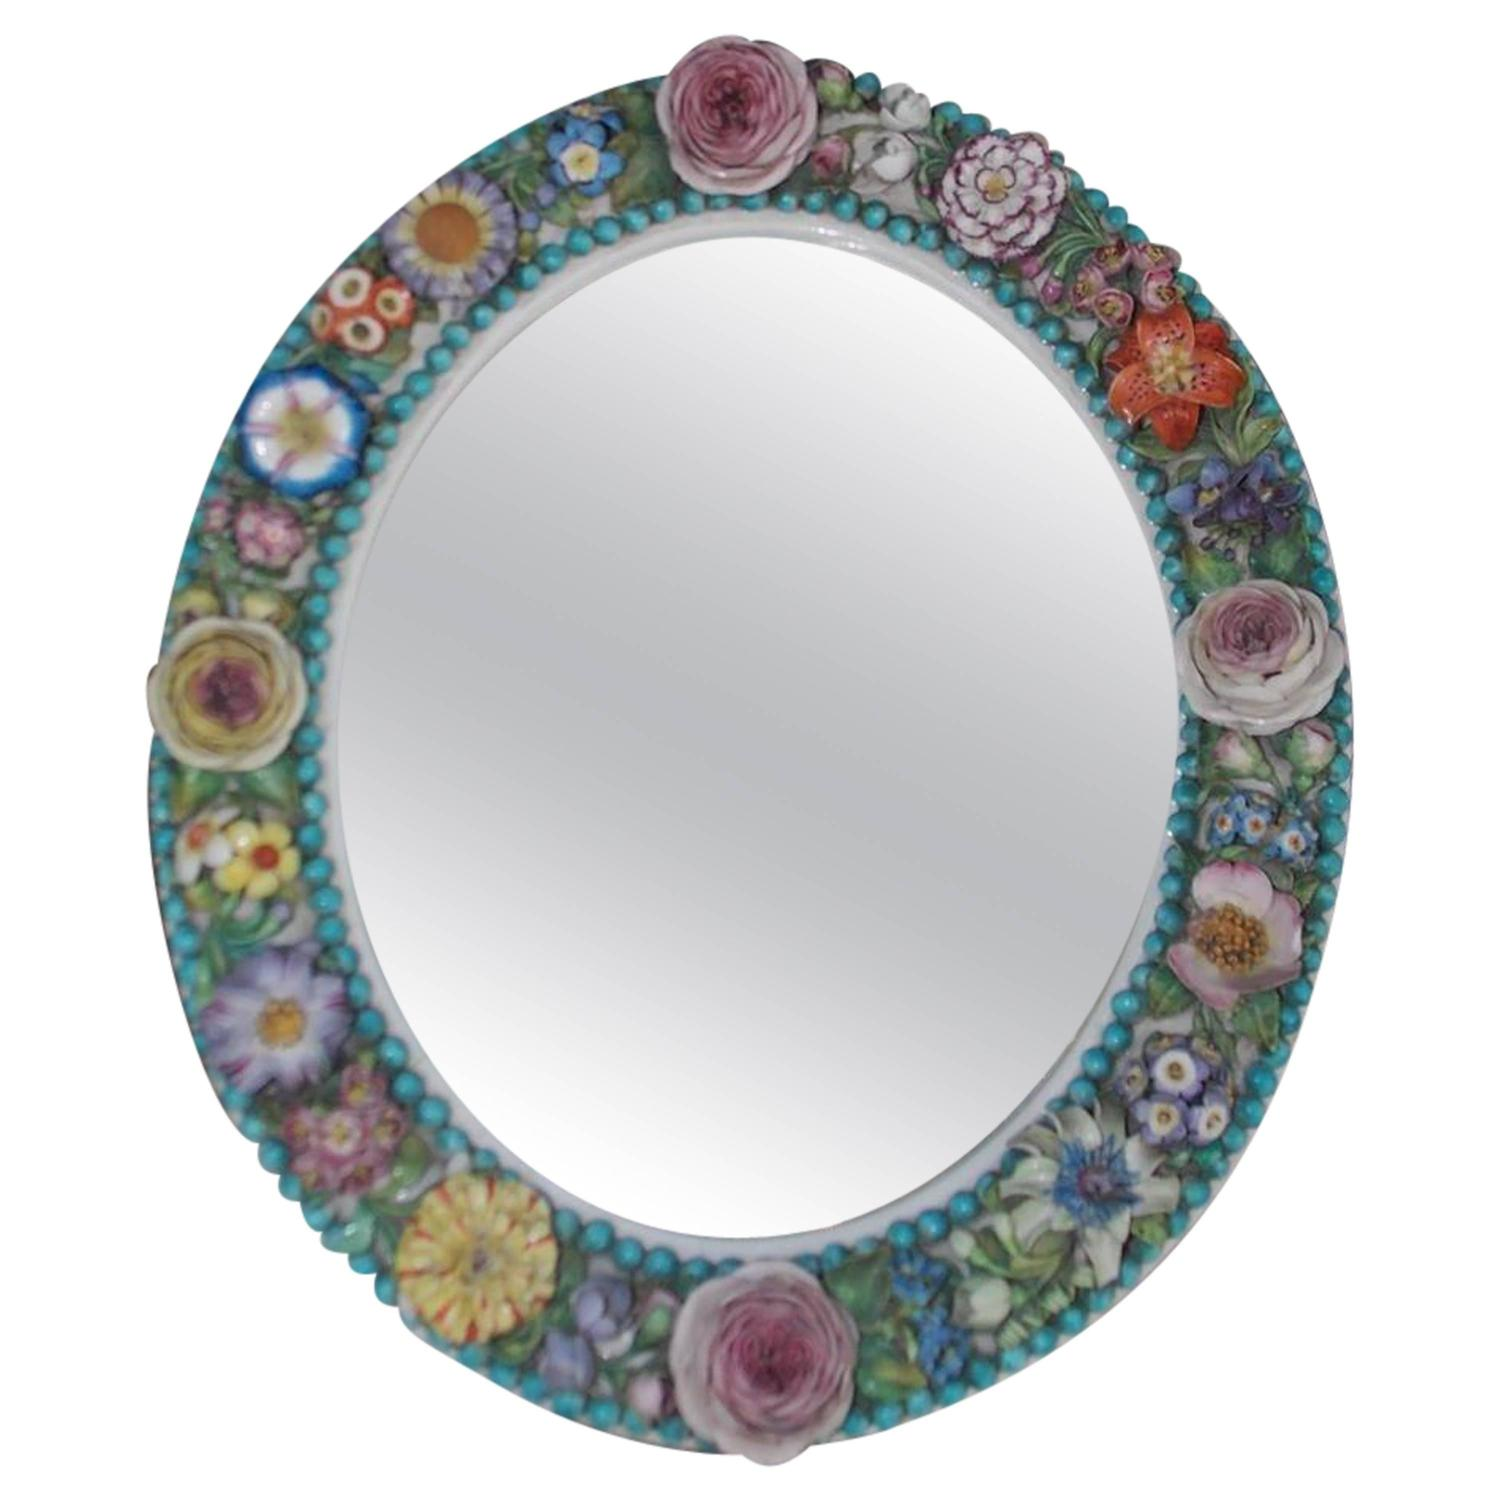 English derby porcelain decorative floral oval wall mirror circa english derby porcelain decorative floral oval wall mirror circa 1800 for sale at 1stdibs amipublicfo Choice Image